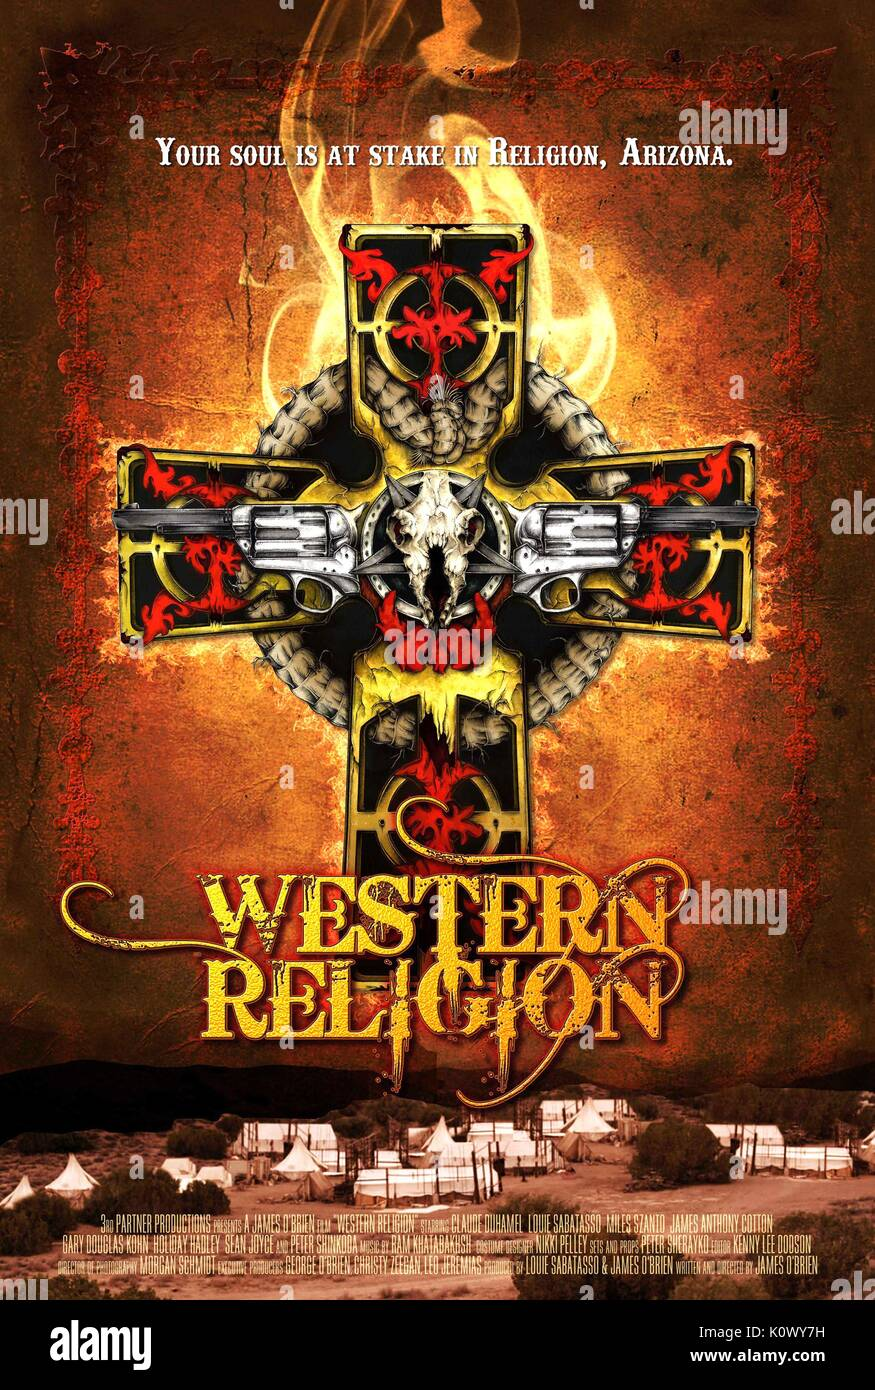 MOVIE POSTER WESTERN RELIGION (2015) - Stock Image